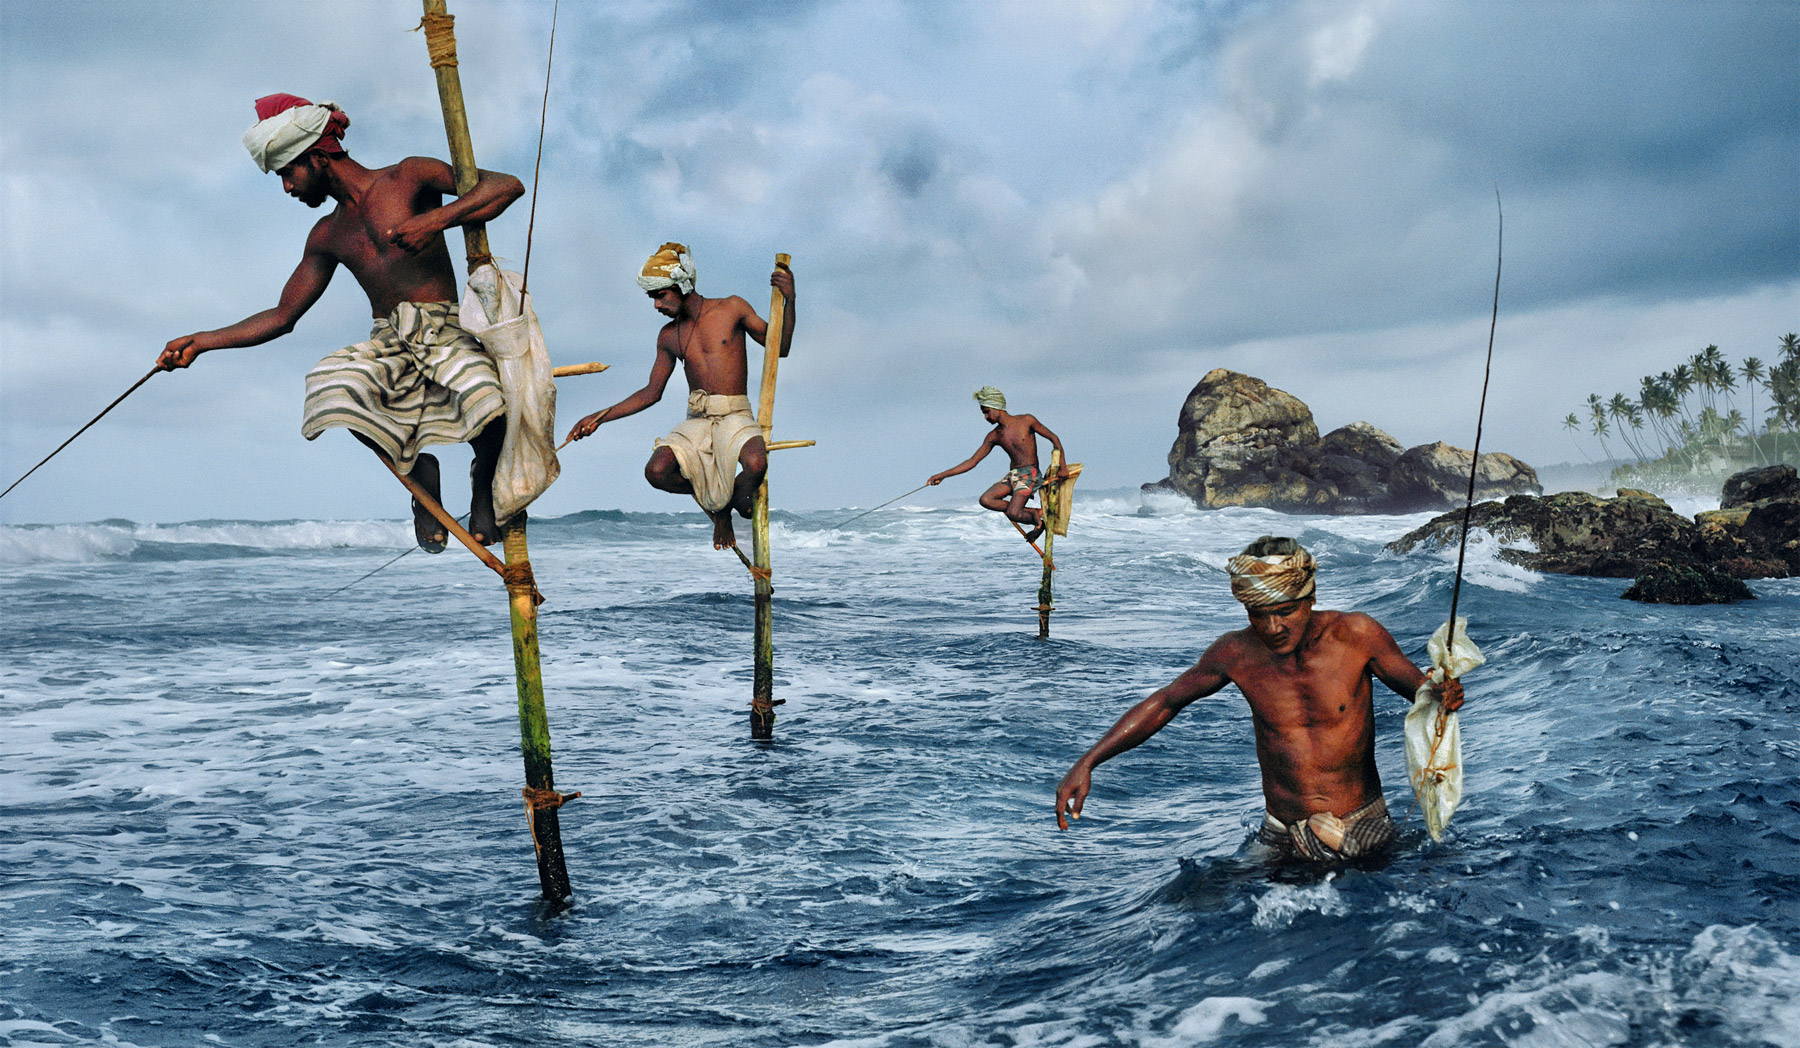 The World Of Steve McCurry – A Celebration of A Photographic Master